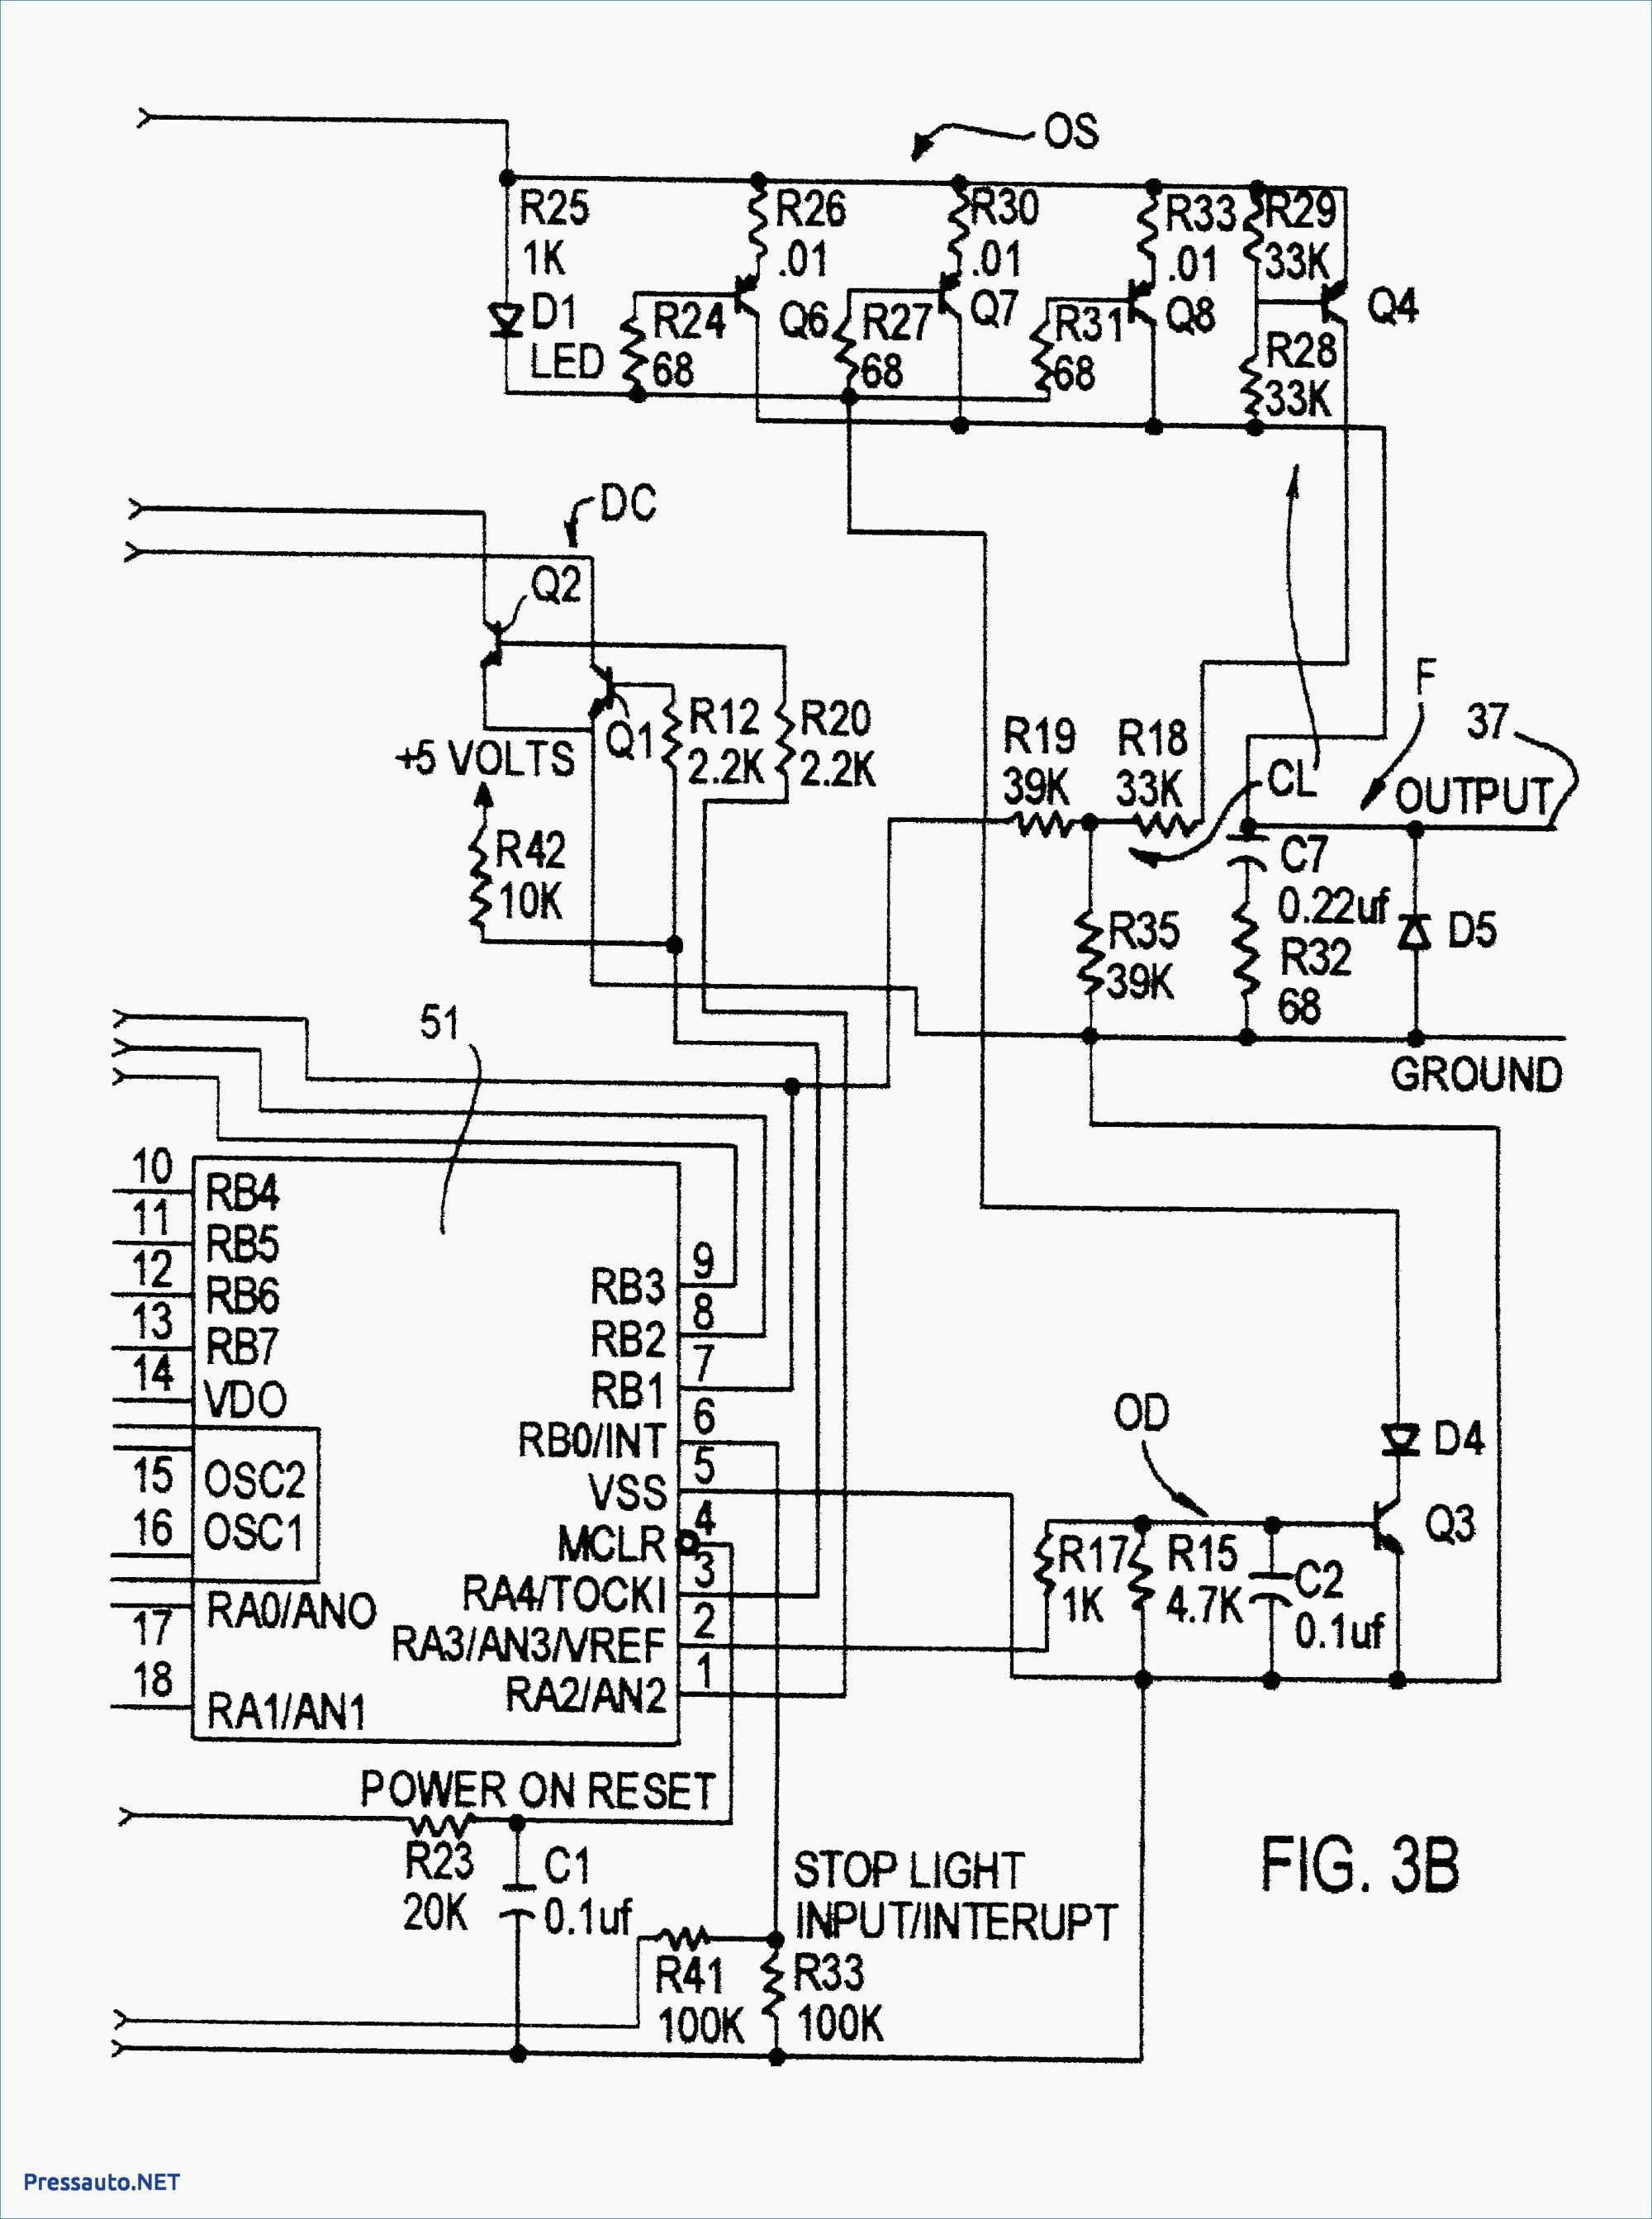 hight resolution of 2003 chevy trailblazer parts diagram chevy blazer parts catalog pics 2003 chevy trailblazer oil level sensor 2003 chevy trailblazer parts diagram